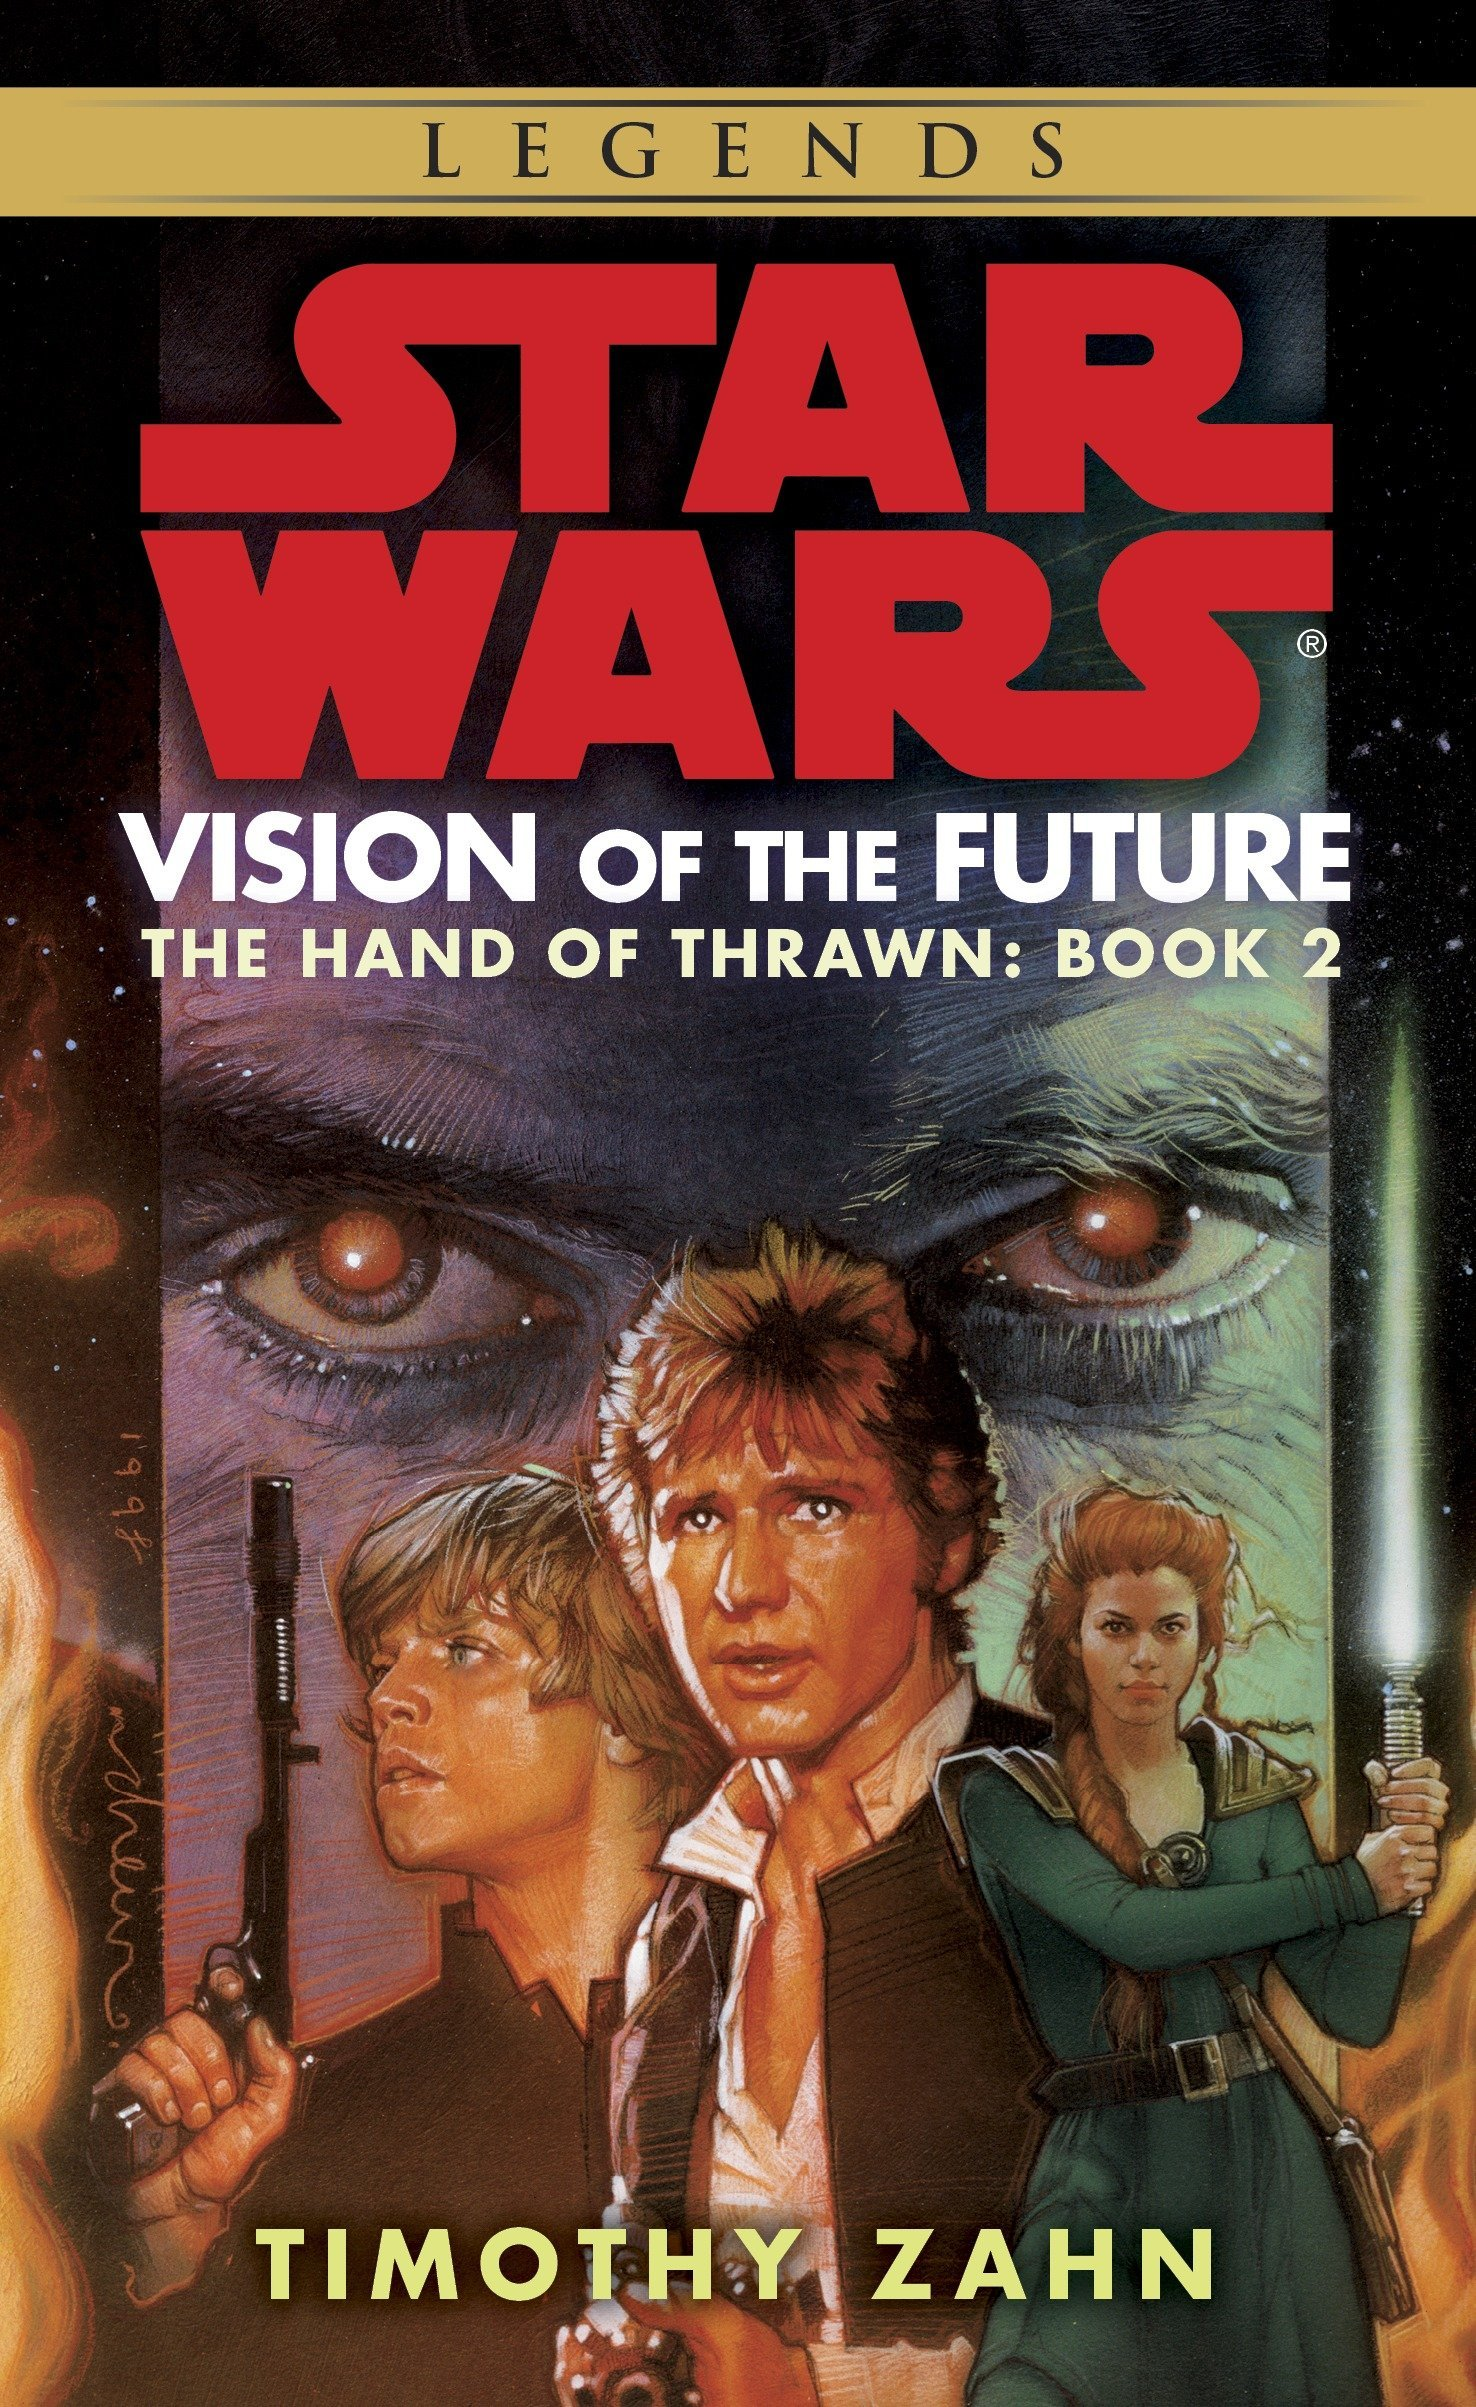 Vision of the Future: Star Wars Legends (The Hand of Thrawn): Hand of Thrawn Book 2: Vision of the Future (Star Wars: The Hand of Thrawn Duology - Legends, Band 2)